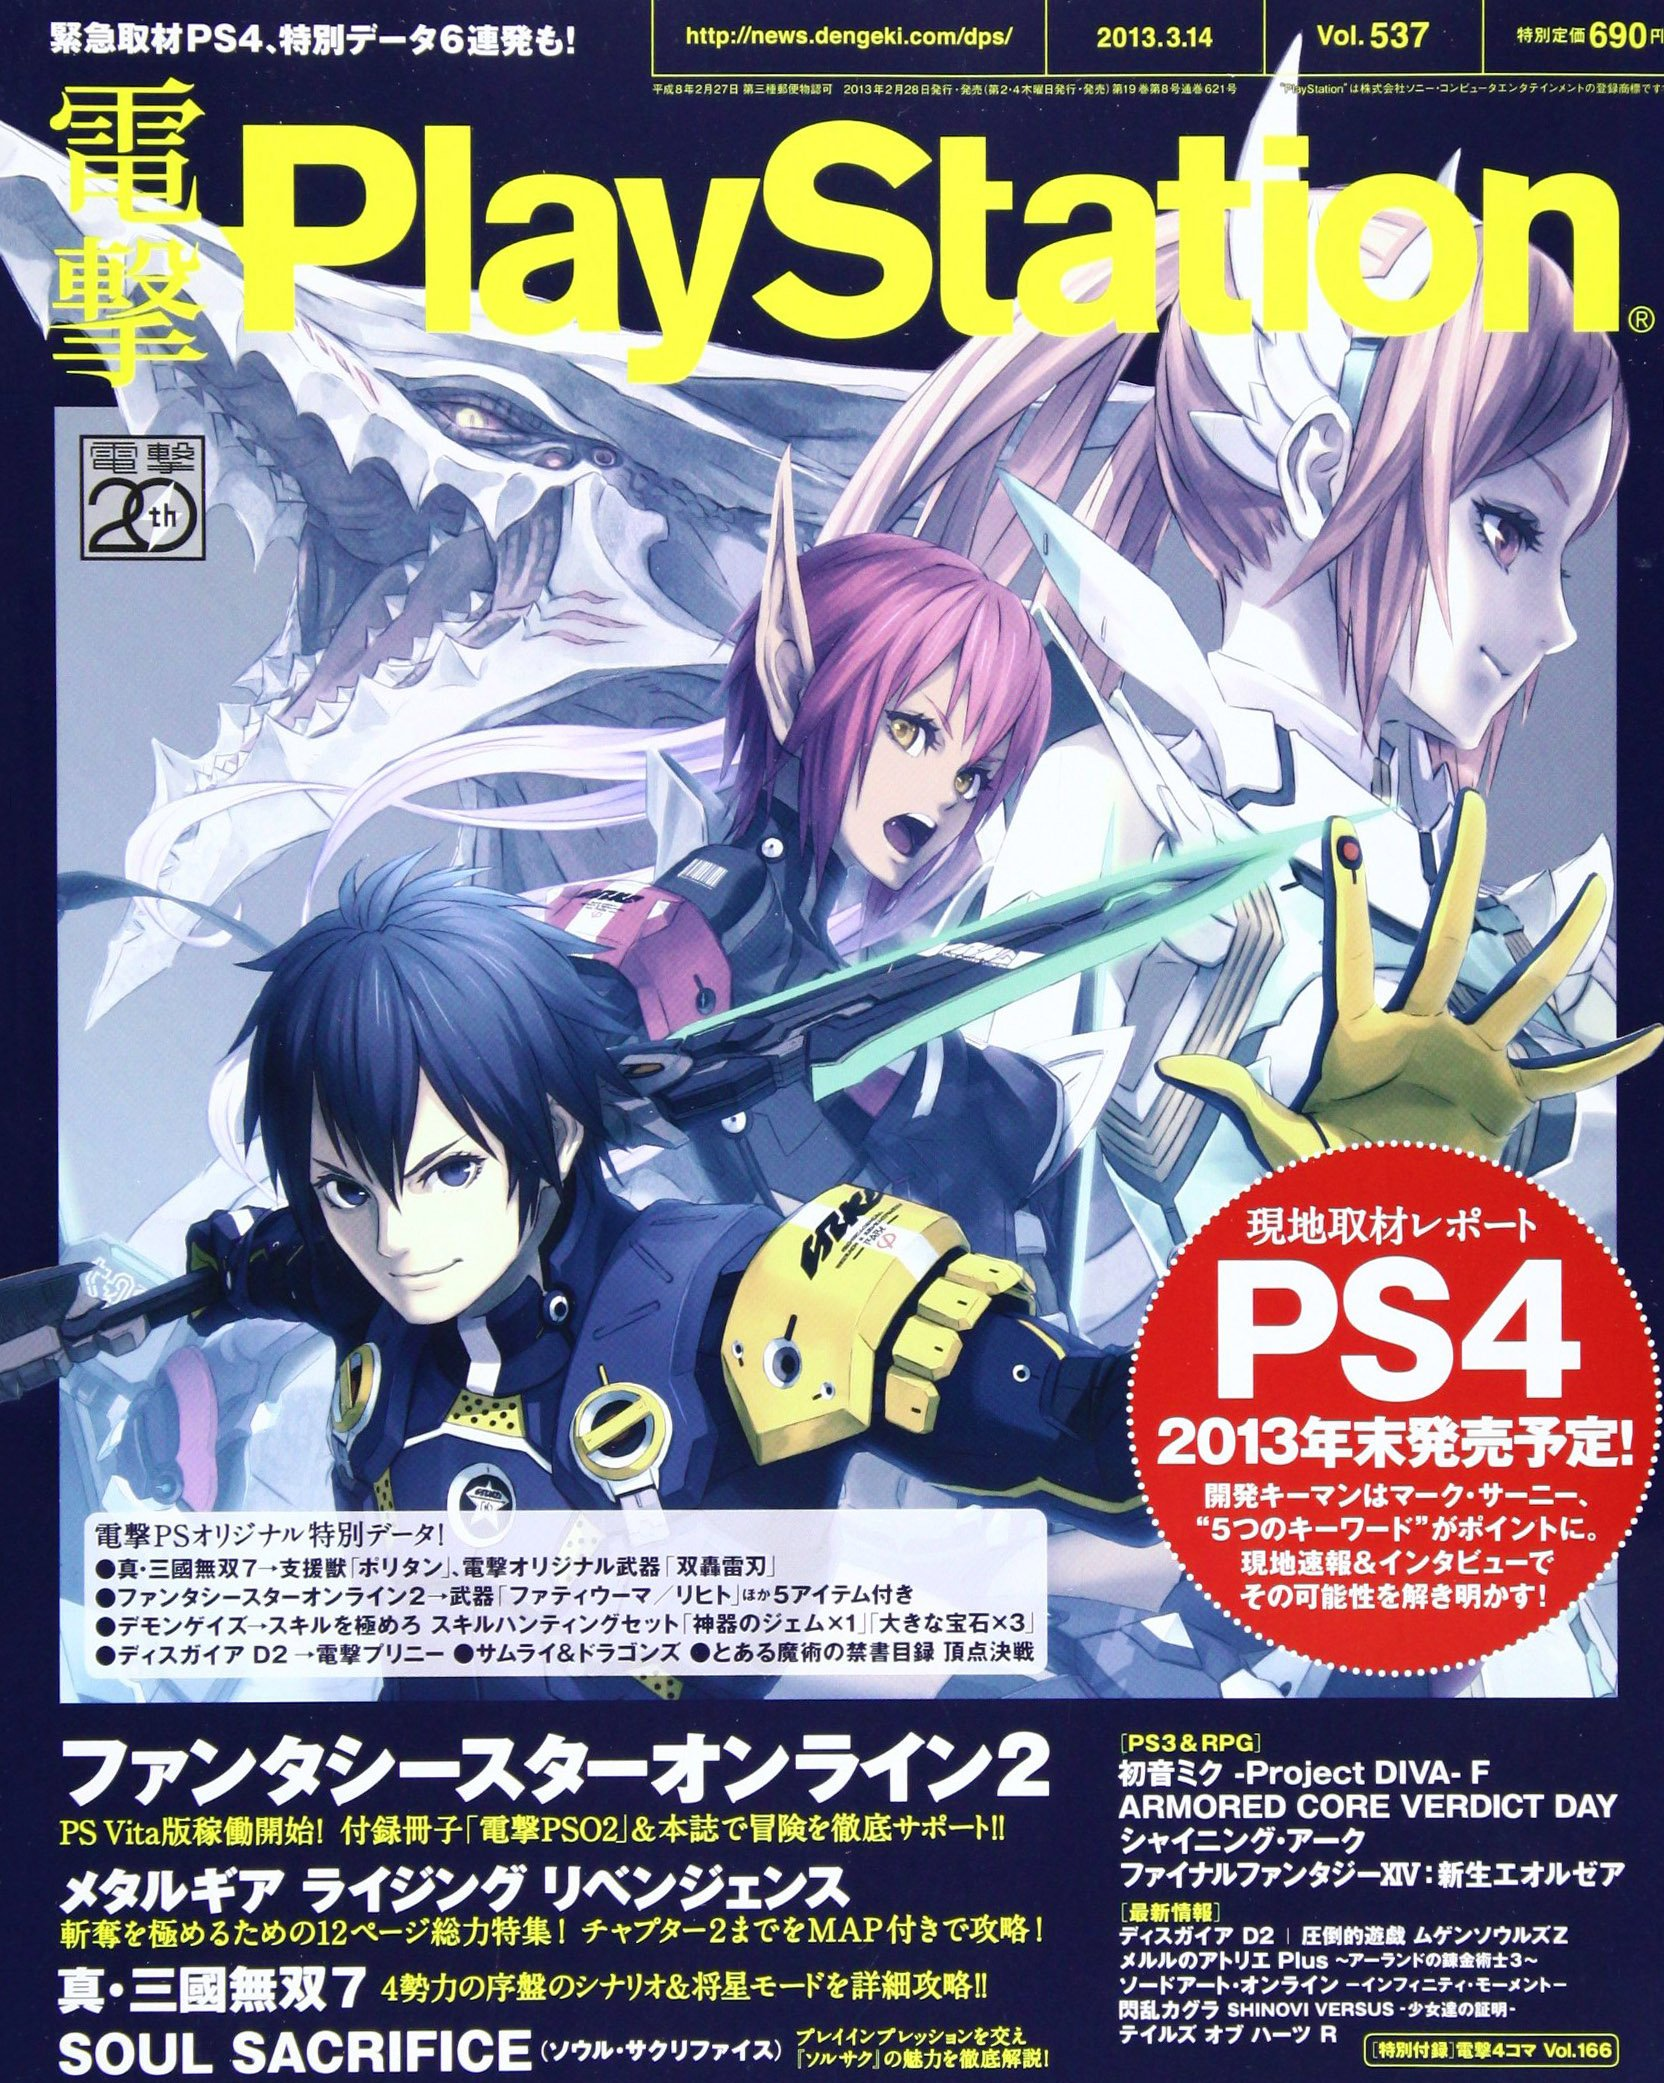 Dengeki PlayStation 537 (March 14, 2013)